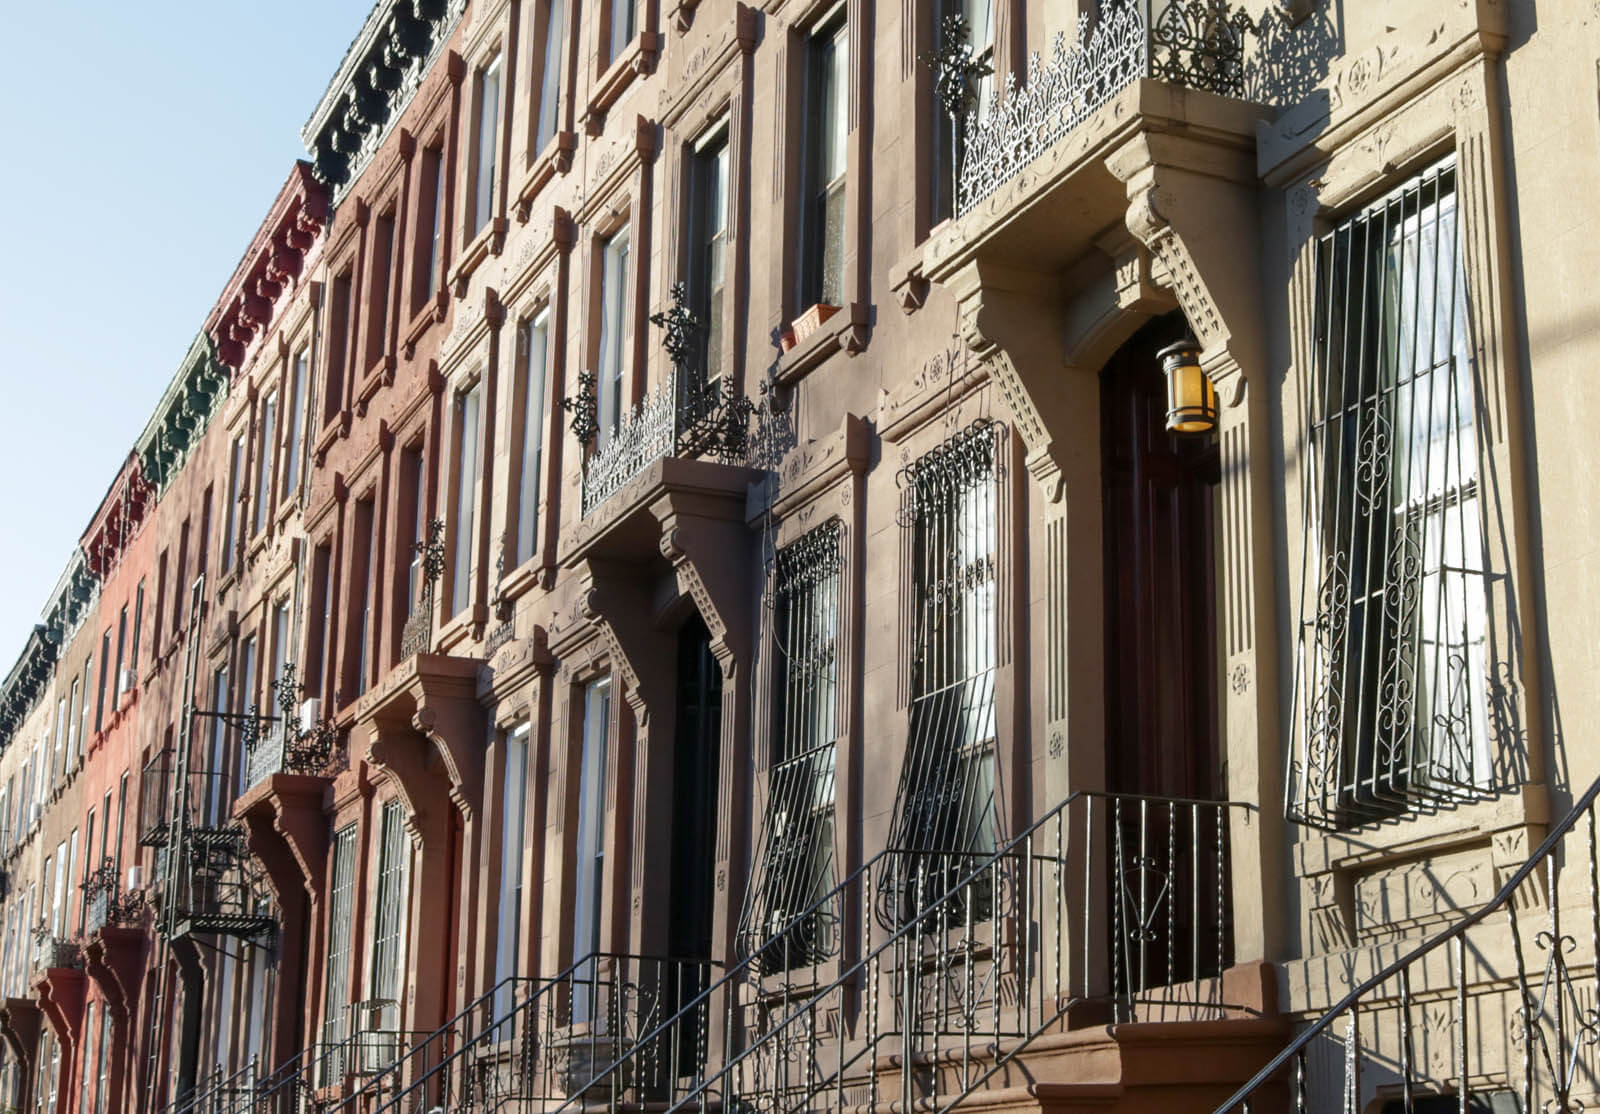 brownstone brooklyn architecture charles lockwood bedford stuyvesant